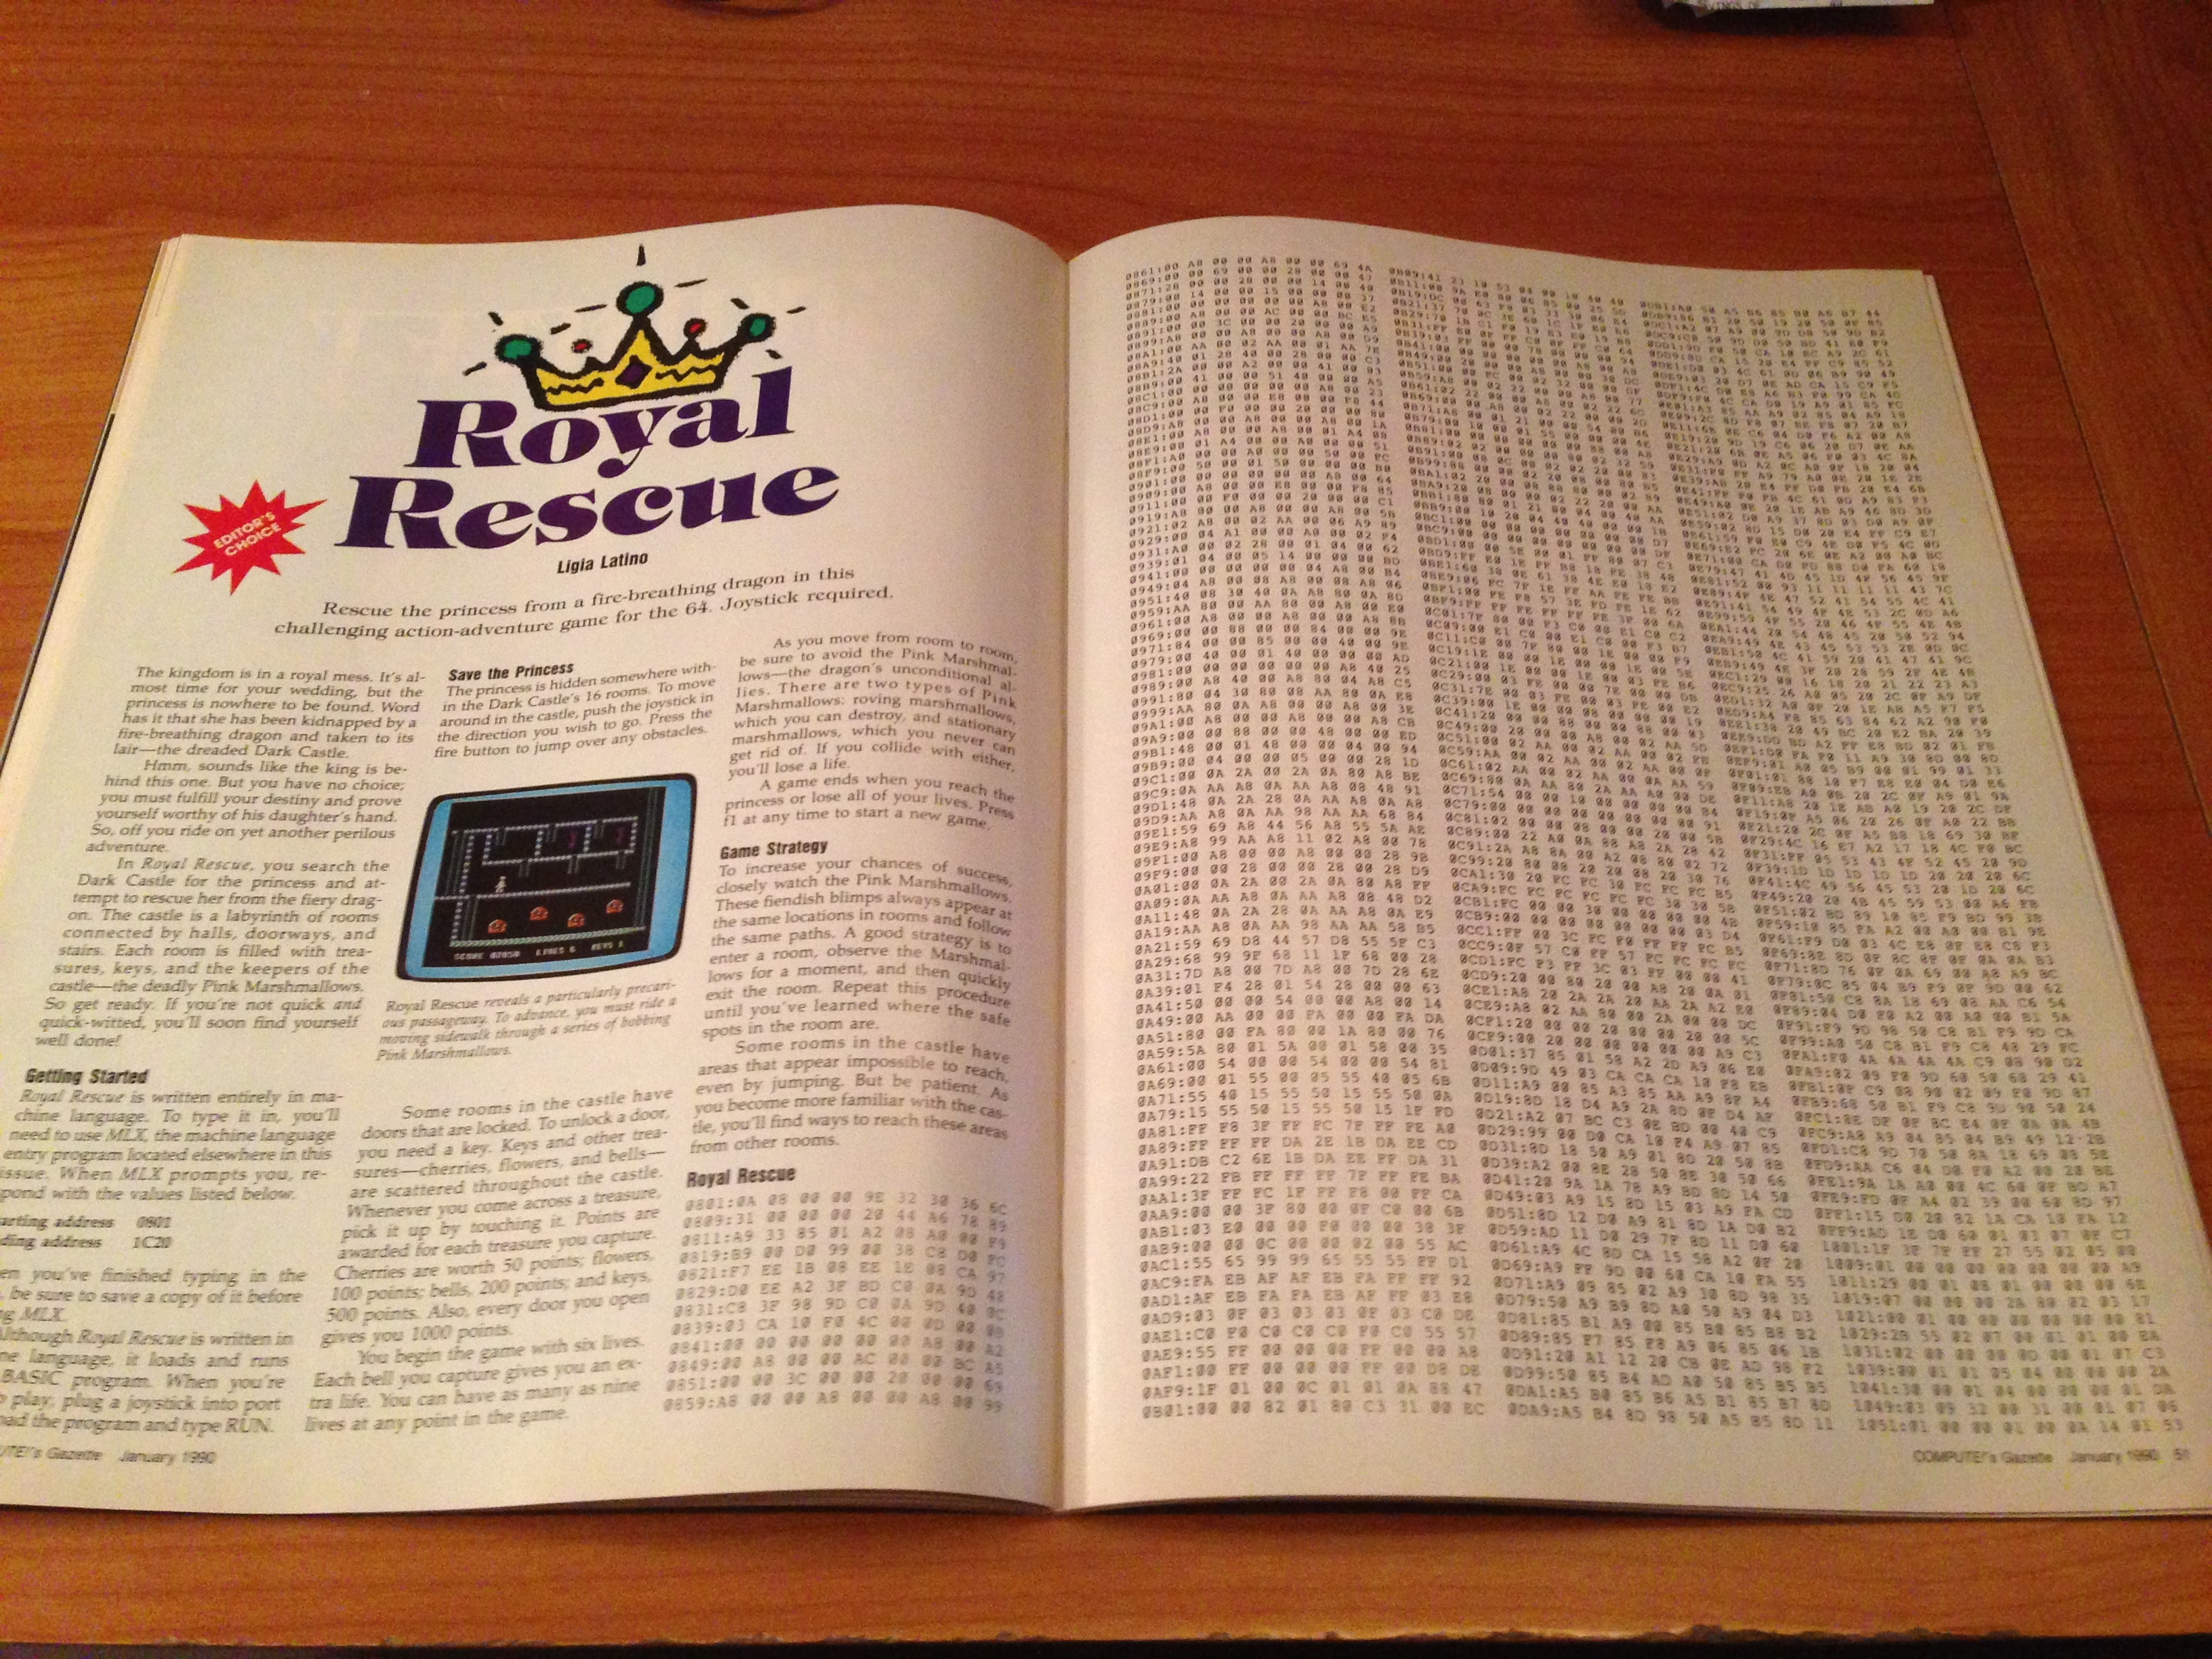 A computer program in an old magazine